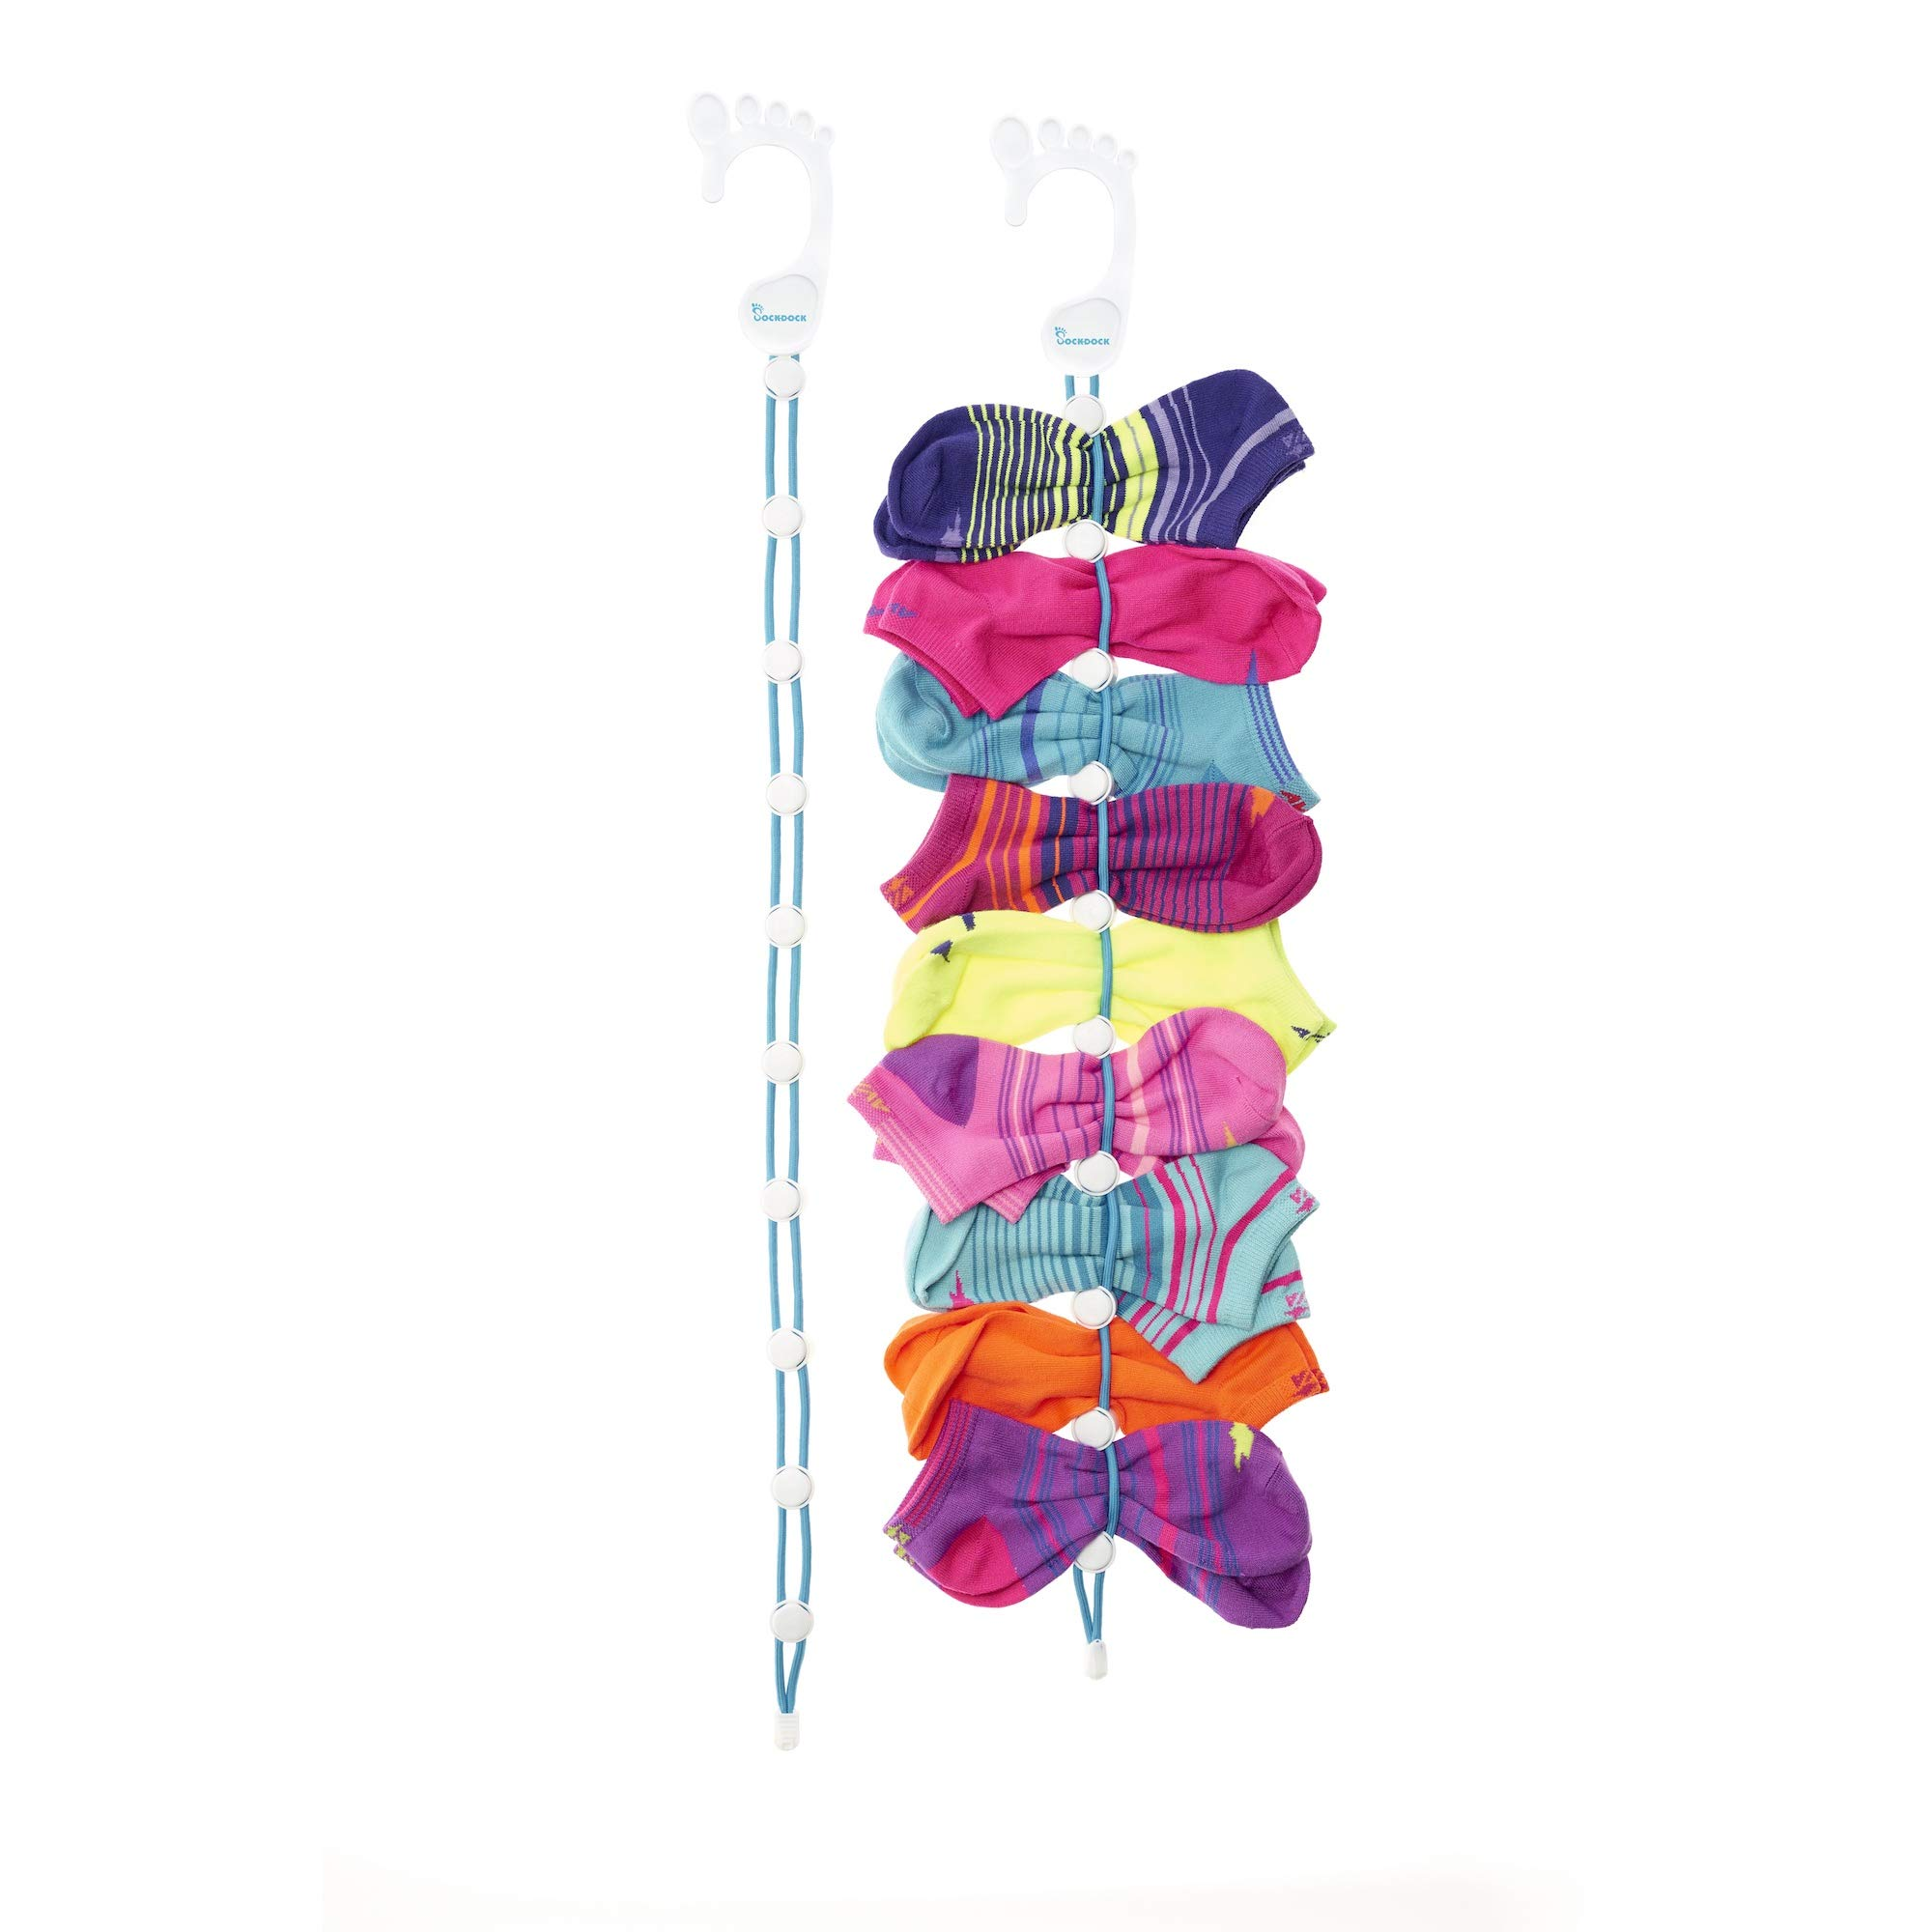 SockDock 2 Pack Sock Laundry and Storage Hangers, Closet Organizers, Easy Clips & Locks Paired Socks Without Ties, Mesh Bags, Bins, Baskets, Drawers, Dividers or Containers (Blue)